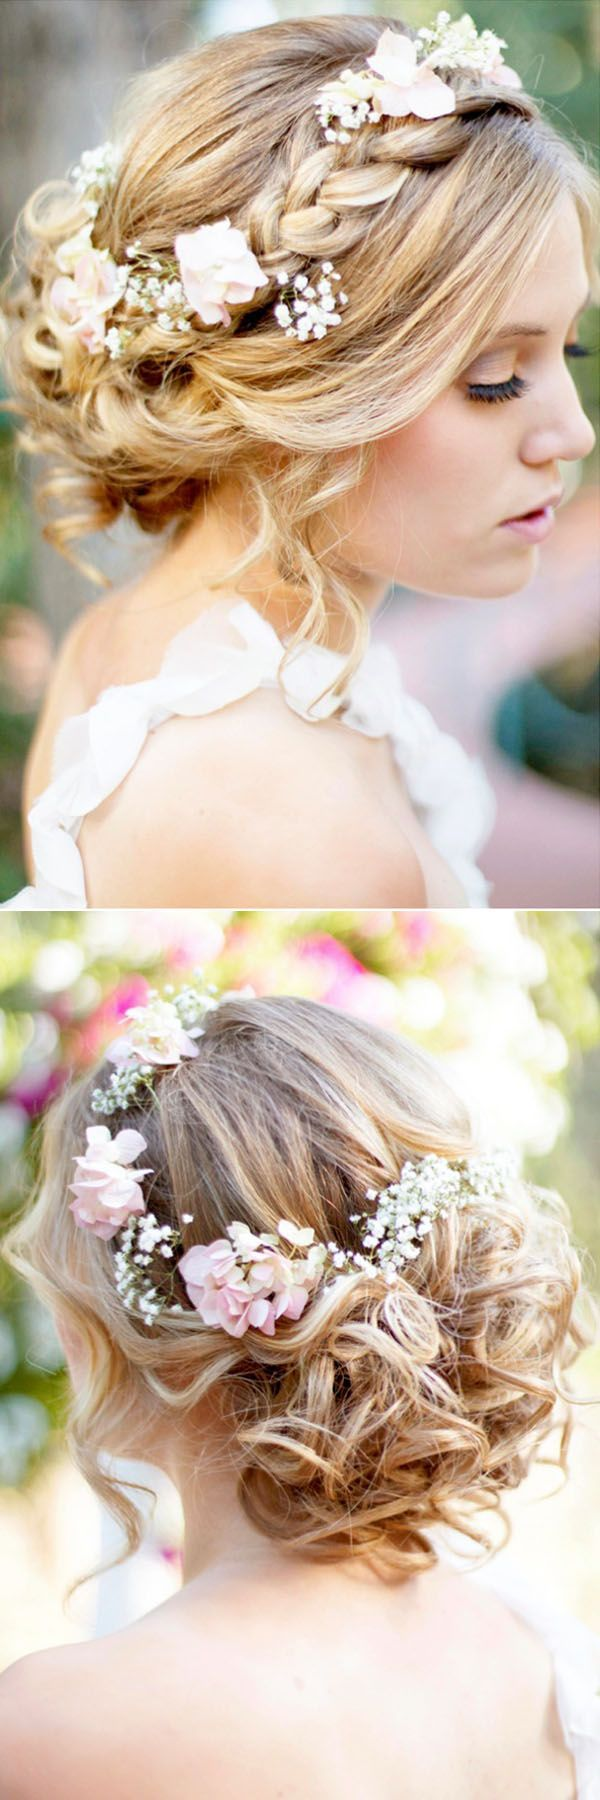 Gorgeous bohemian updo bridal hairstyle with floral hairpiece